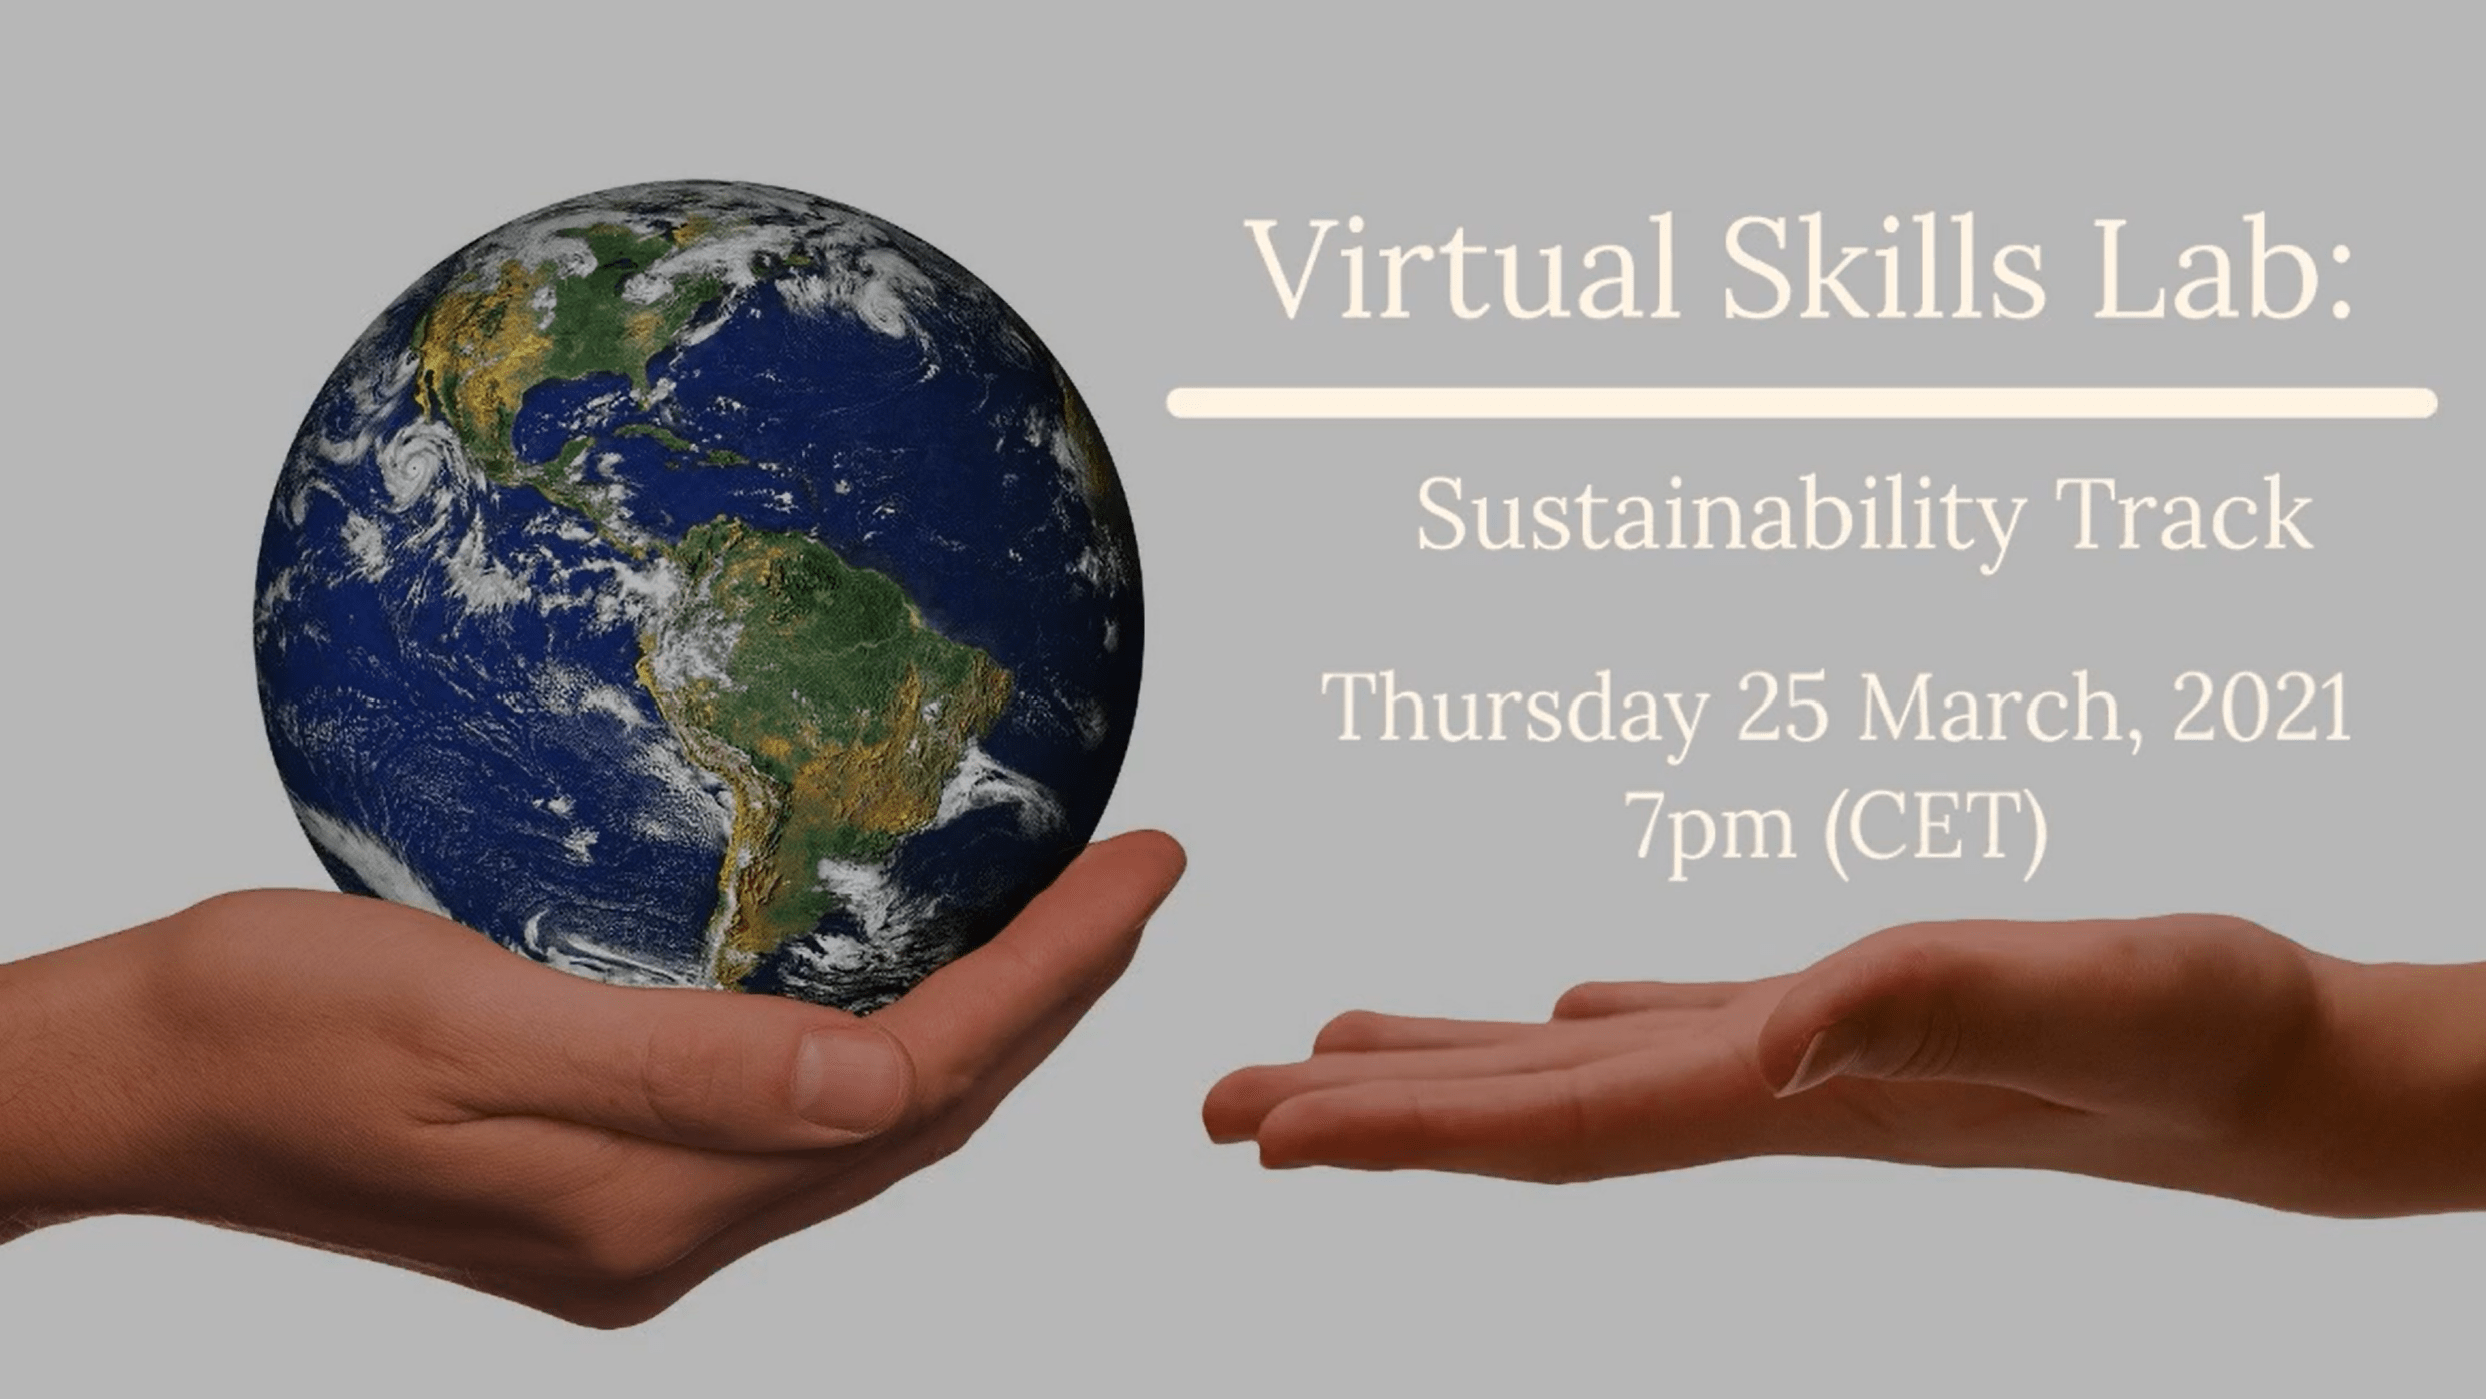 Virtual Skills Lab Info Session: The Sustainability Track